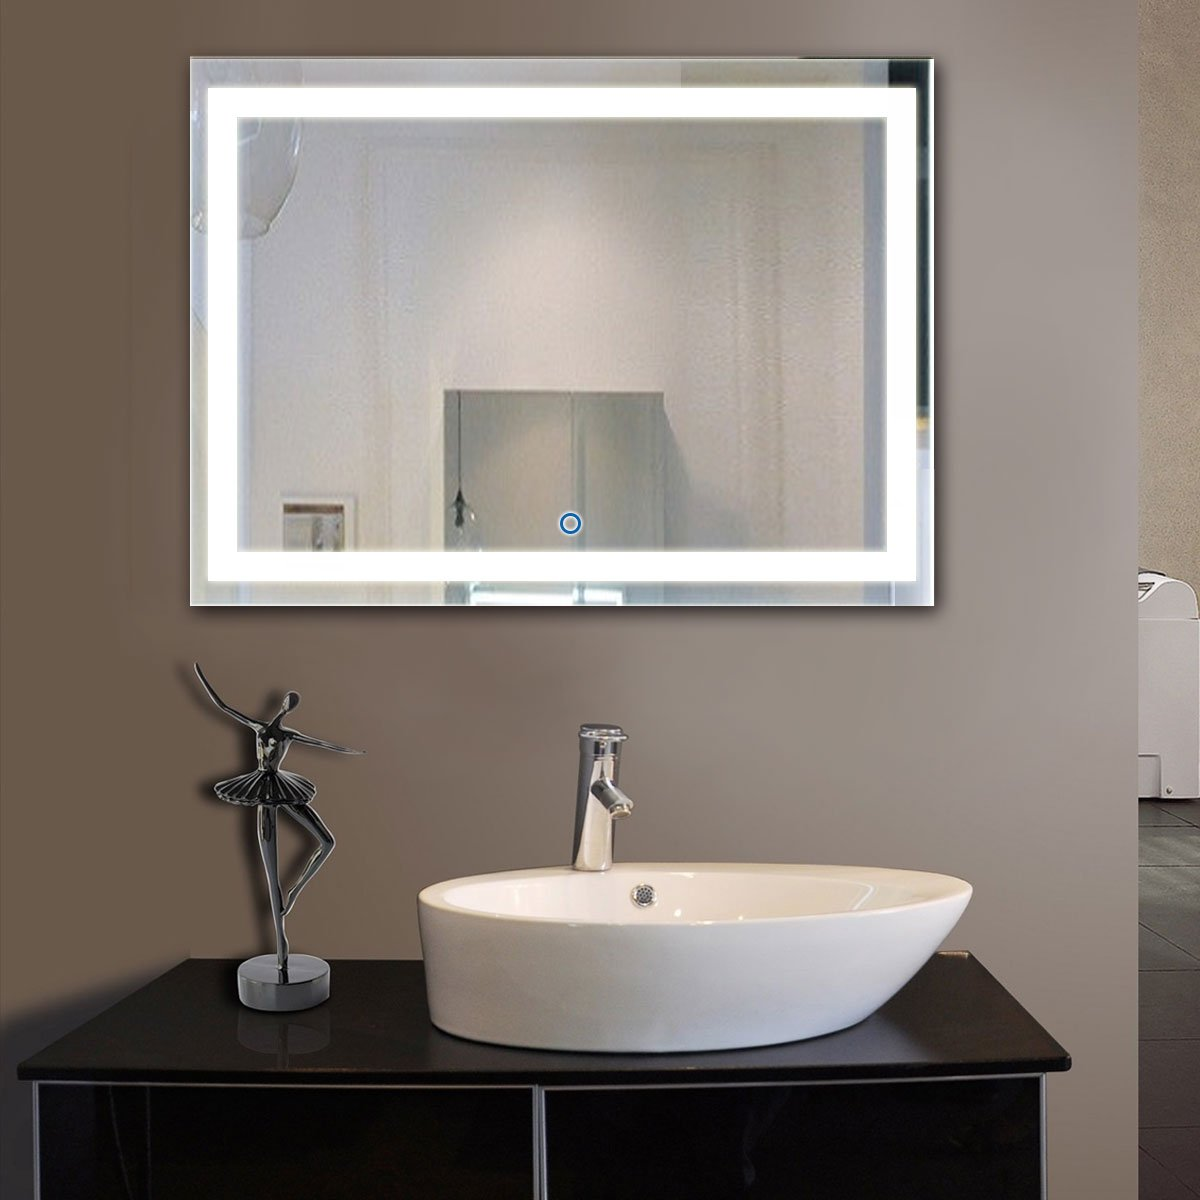 amazoncom decoraport 48 inch 36 inch horizontal led wall mounted lighted vanity bathroom silvered mirror with touch button a ck010 d home kitchen - Bathroom Mirror With Lights